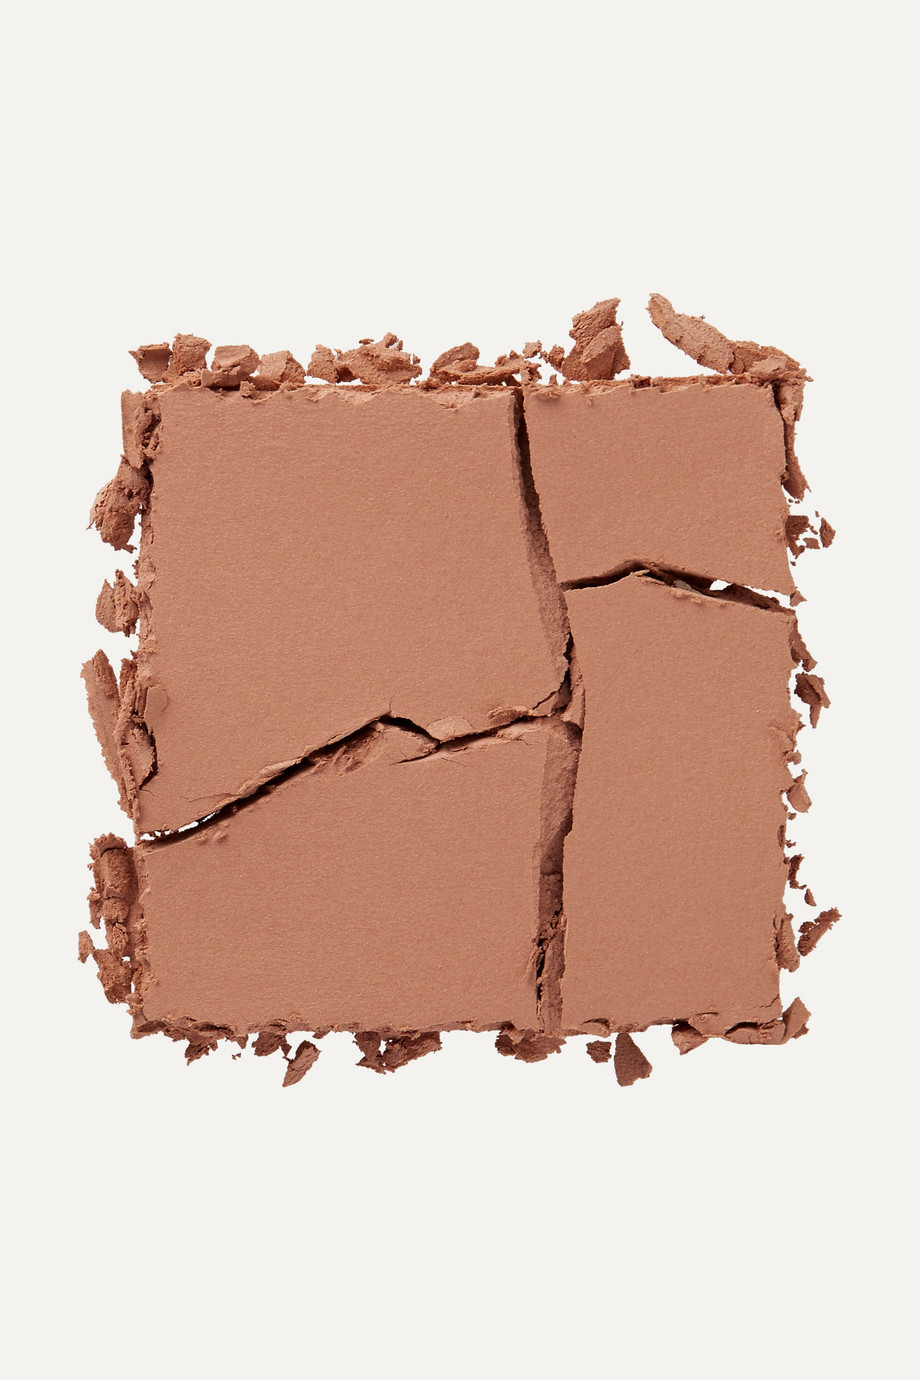 Serge Lutens Teint Si Fin Compact Foundation – B60 – Foundation